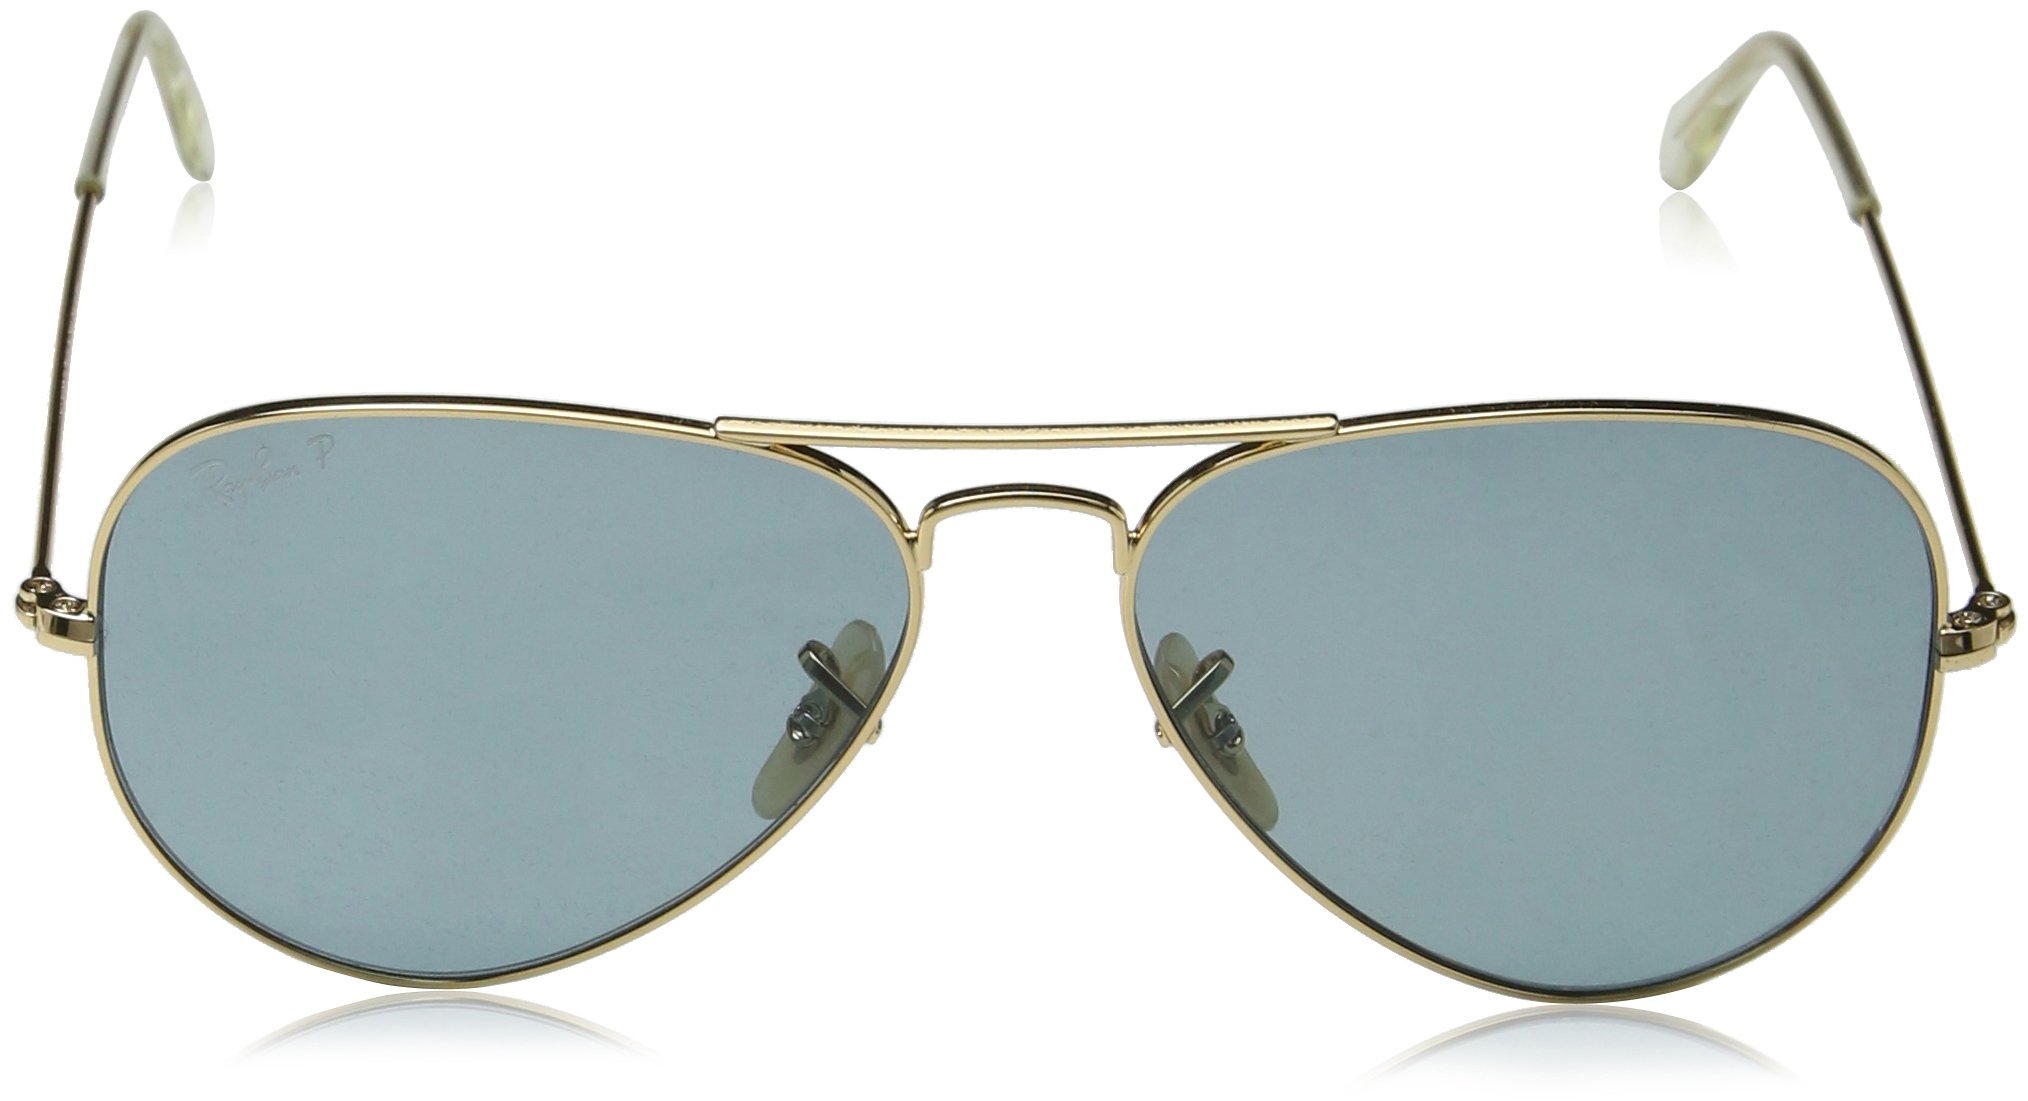 Ray-Ban 3025 Aviator Large Metal Non-Mirrored Polarized Sunglasses, Gold/Green, 55mm by Ray-Ban (Image #3)